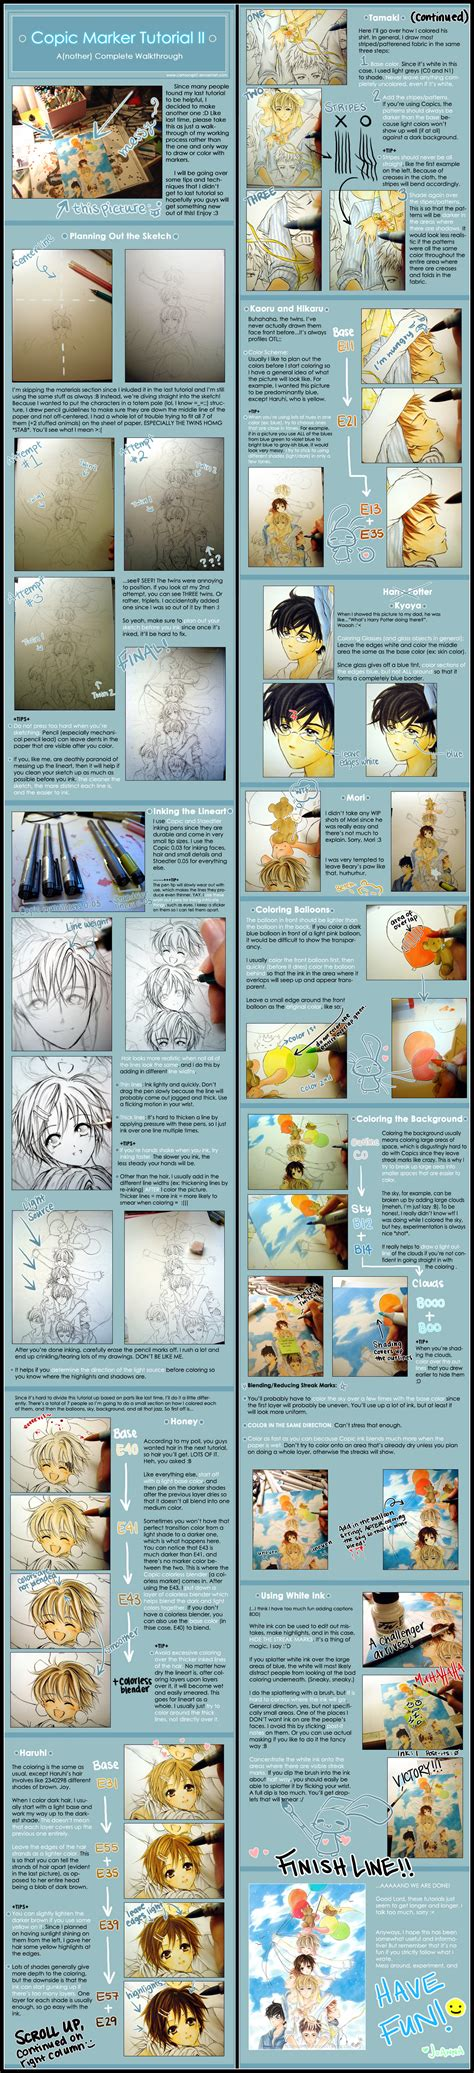 www tutorial copic marker tutorial ii by cartoongirl7 on deviantart